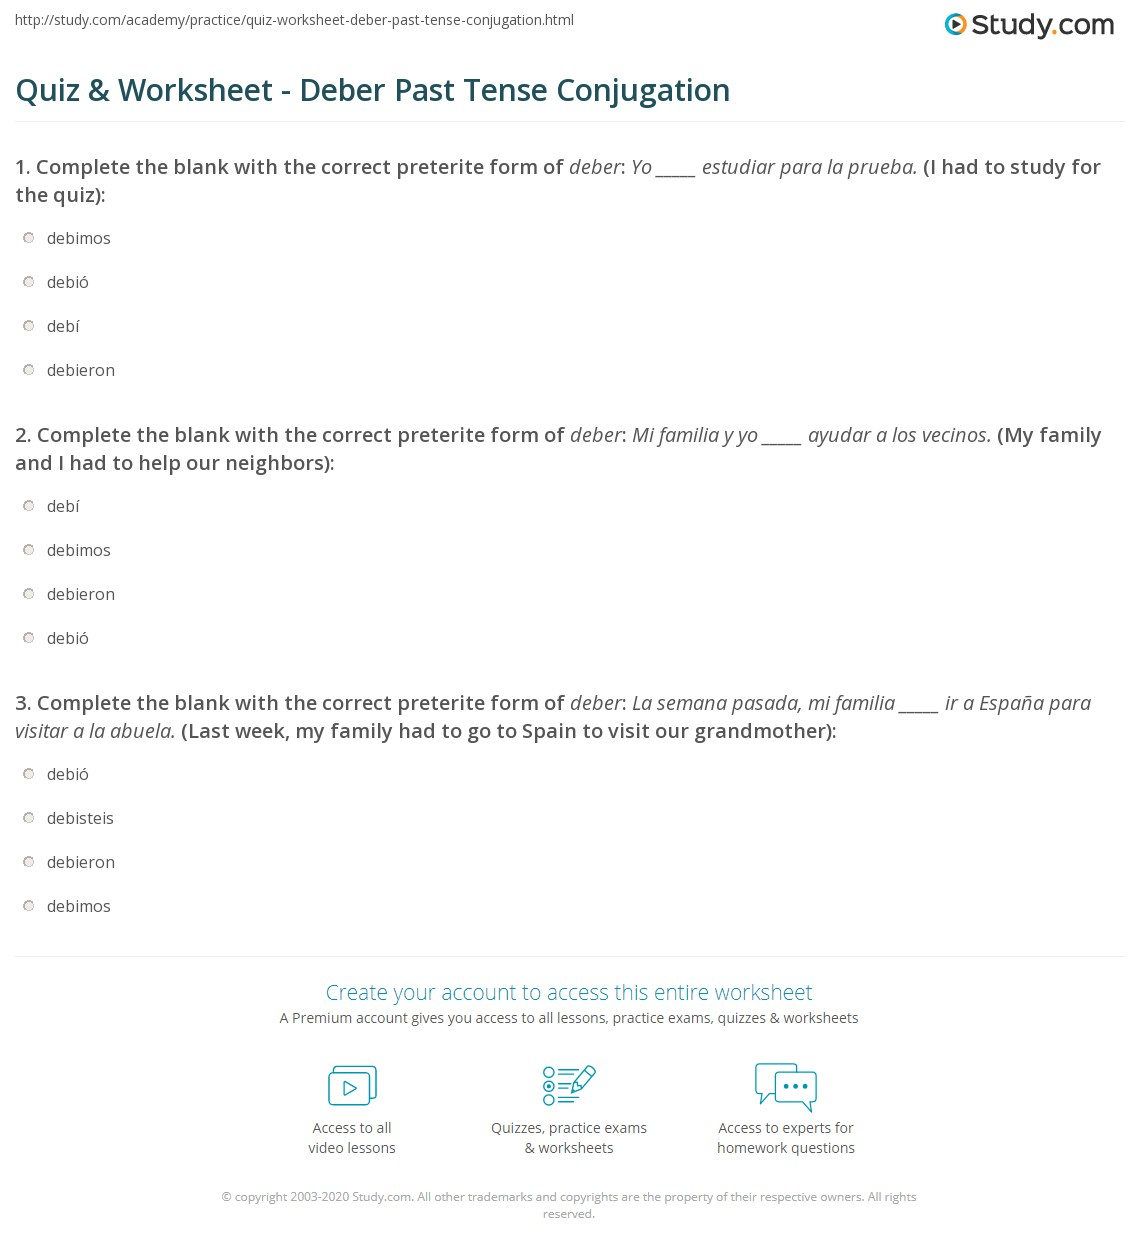 Quiz & Worksheet - Deber Past Tense Conjugation | Study.com